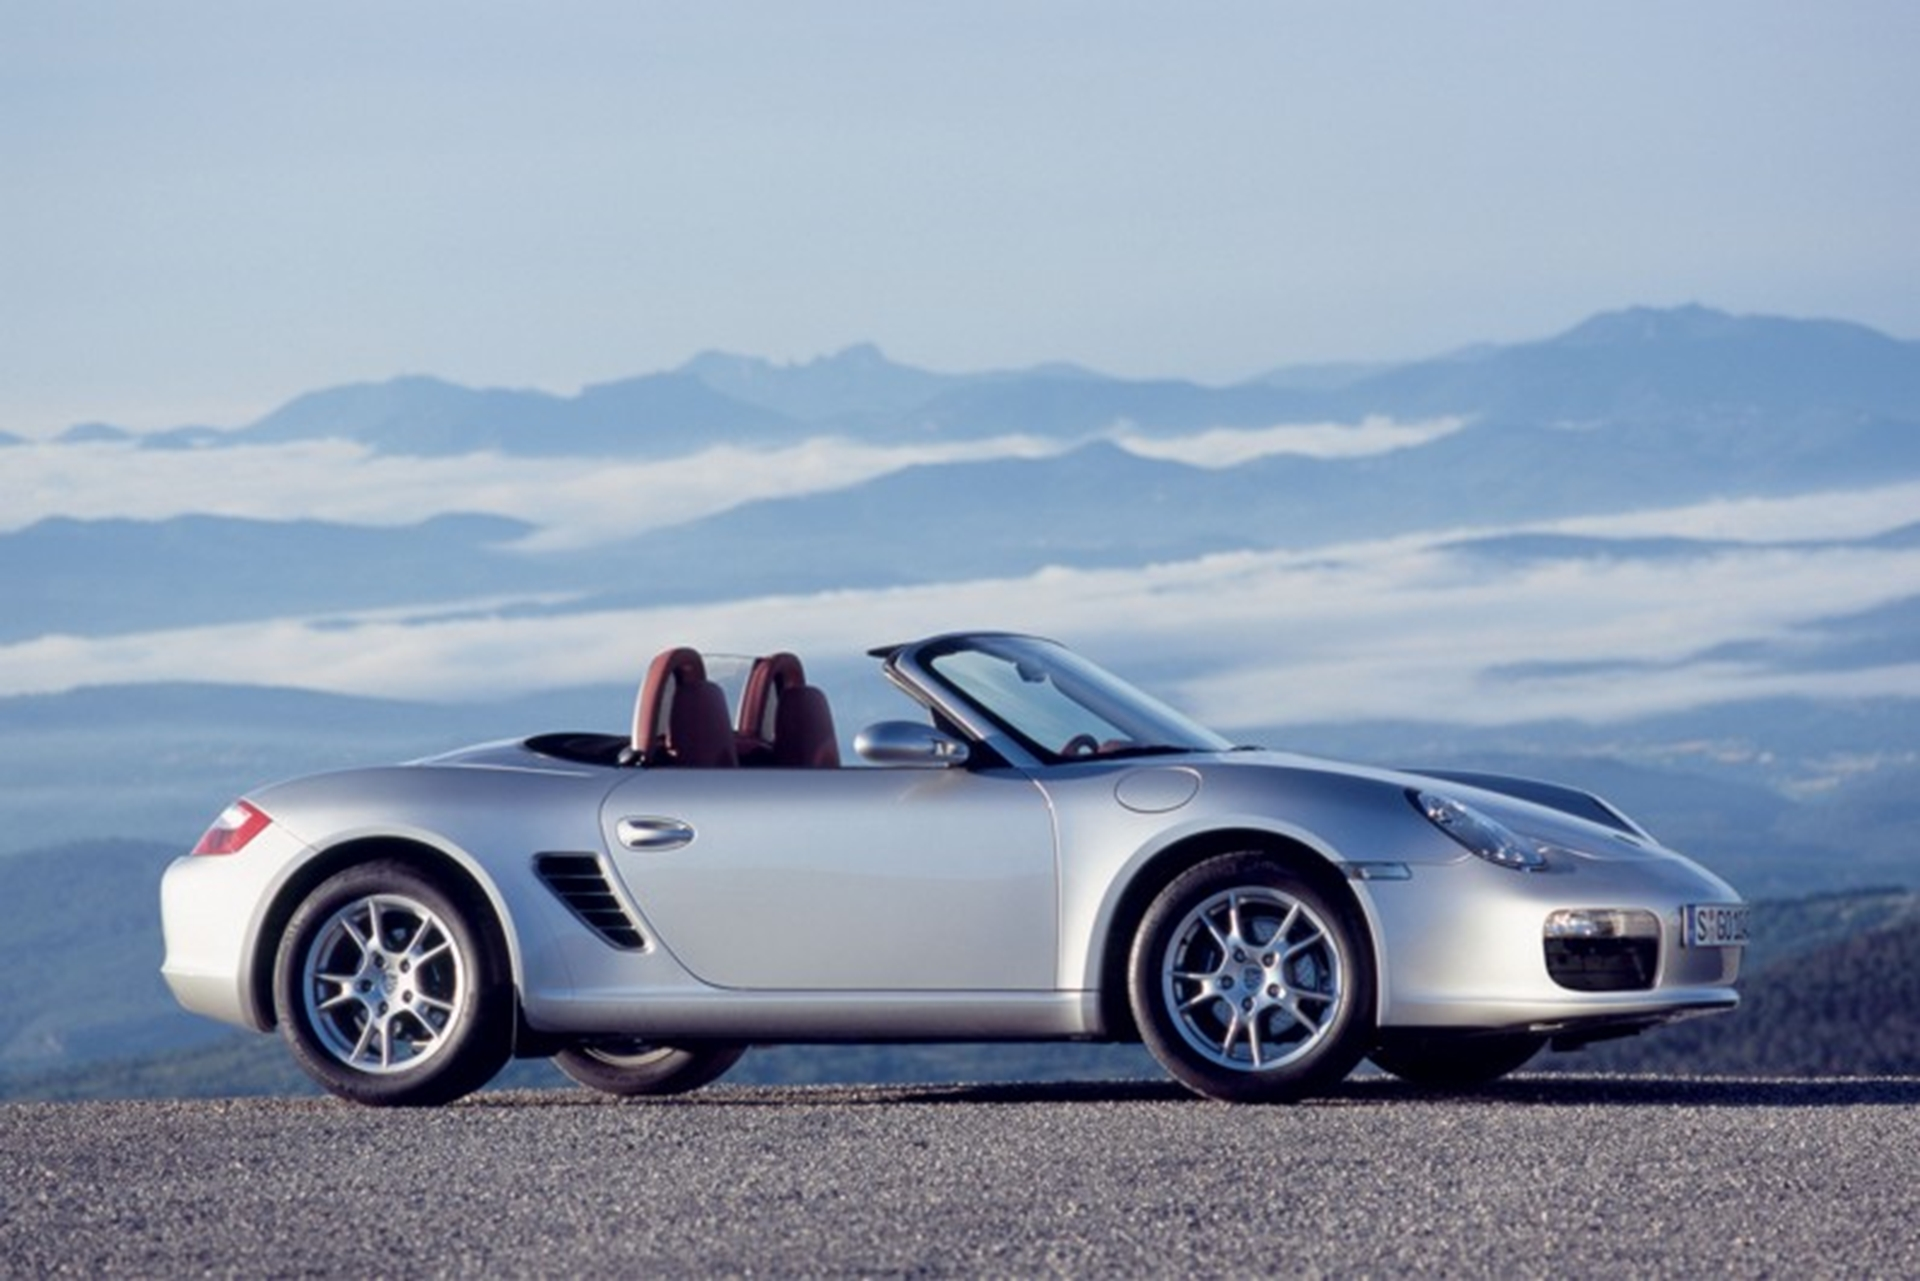 Porsche Boxster wins What Car? Used Sports Car of the Year Award